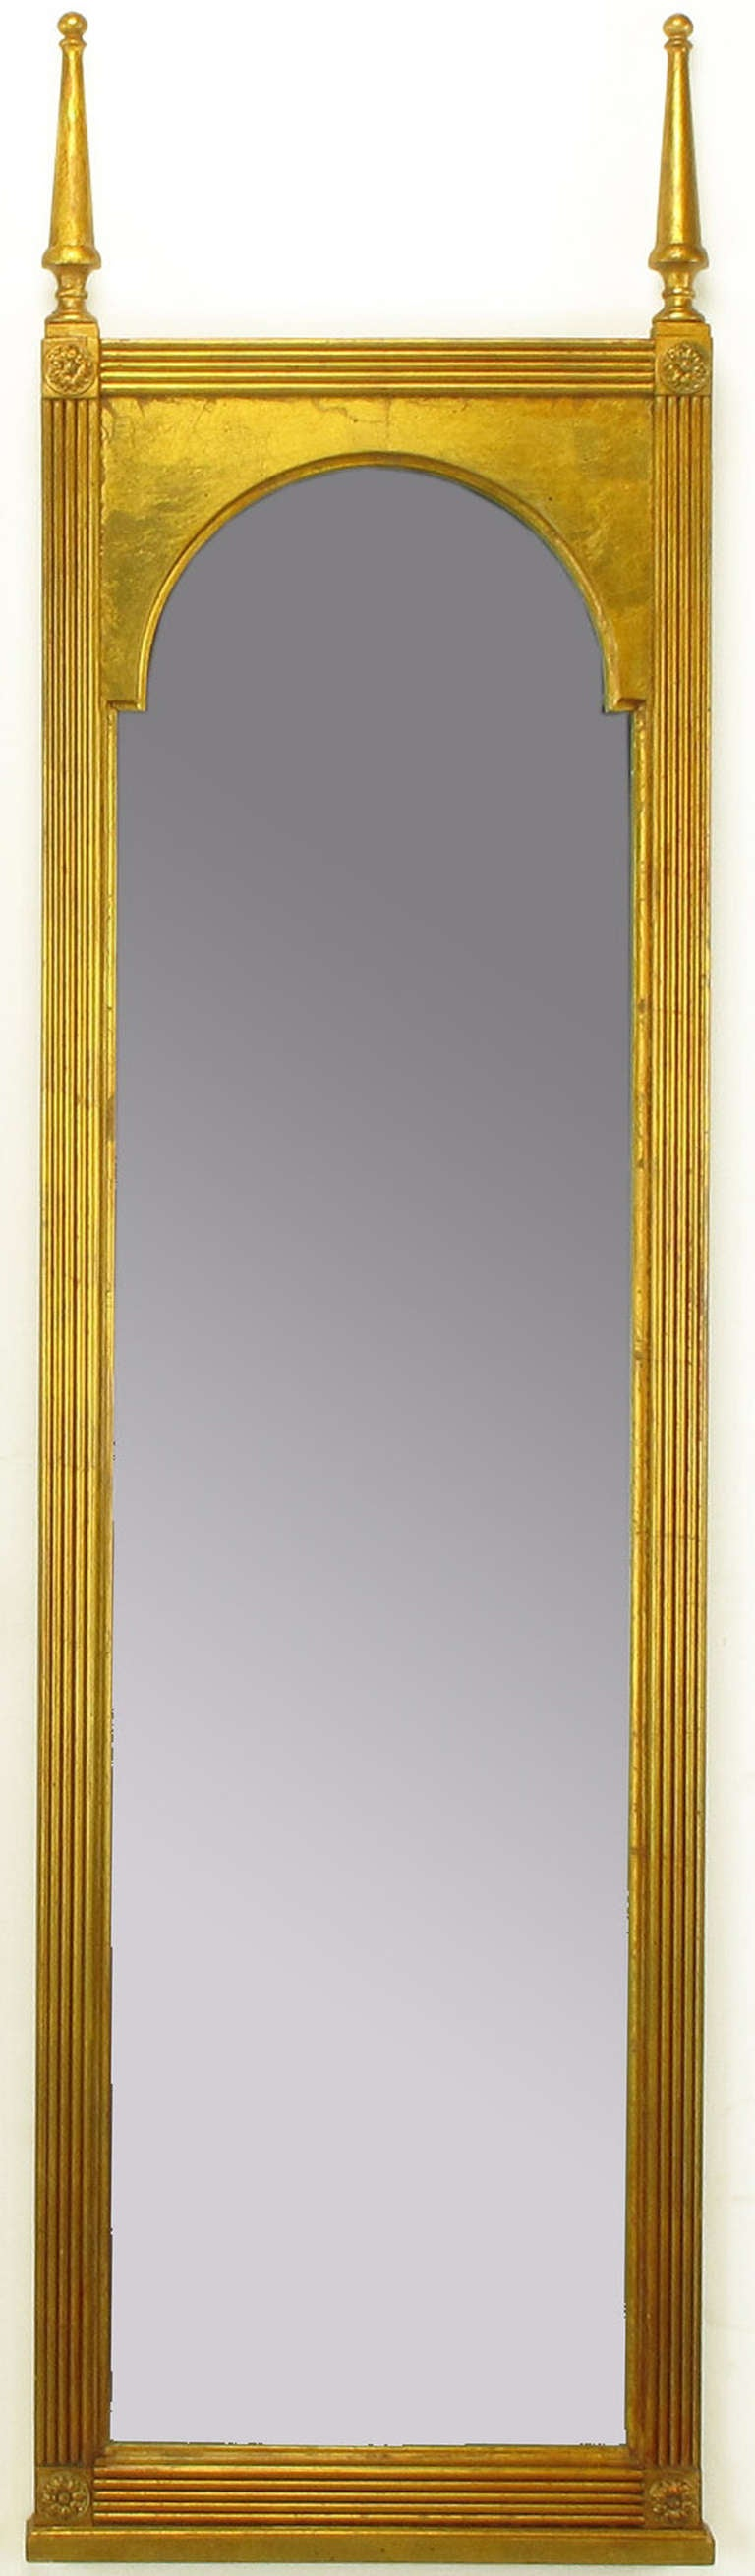 American Pair of Giltwood Double Spire Palladian Arch Mirrors For Sale